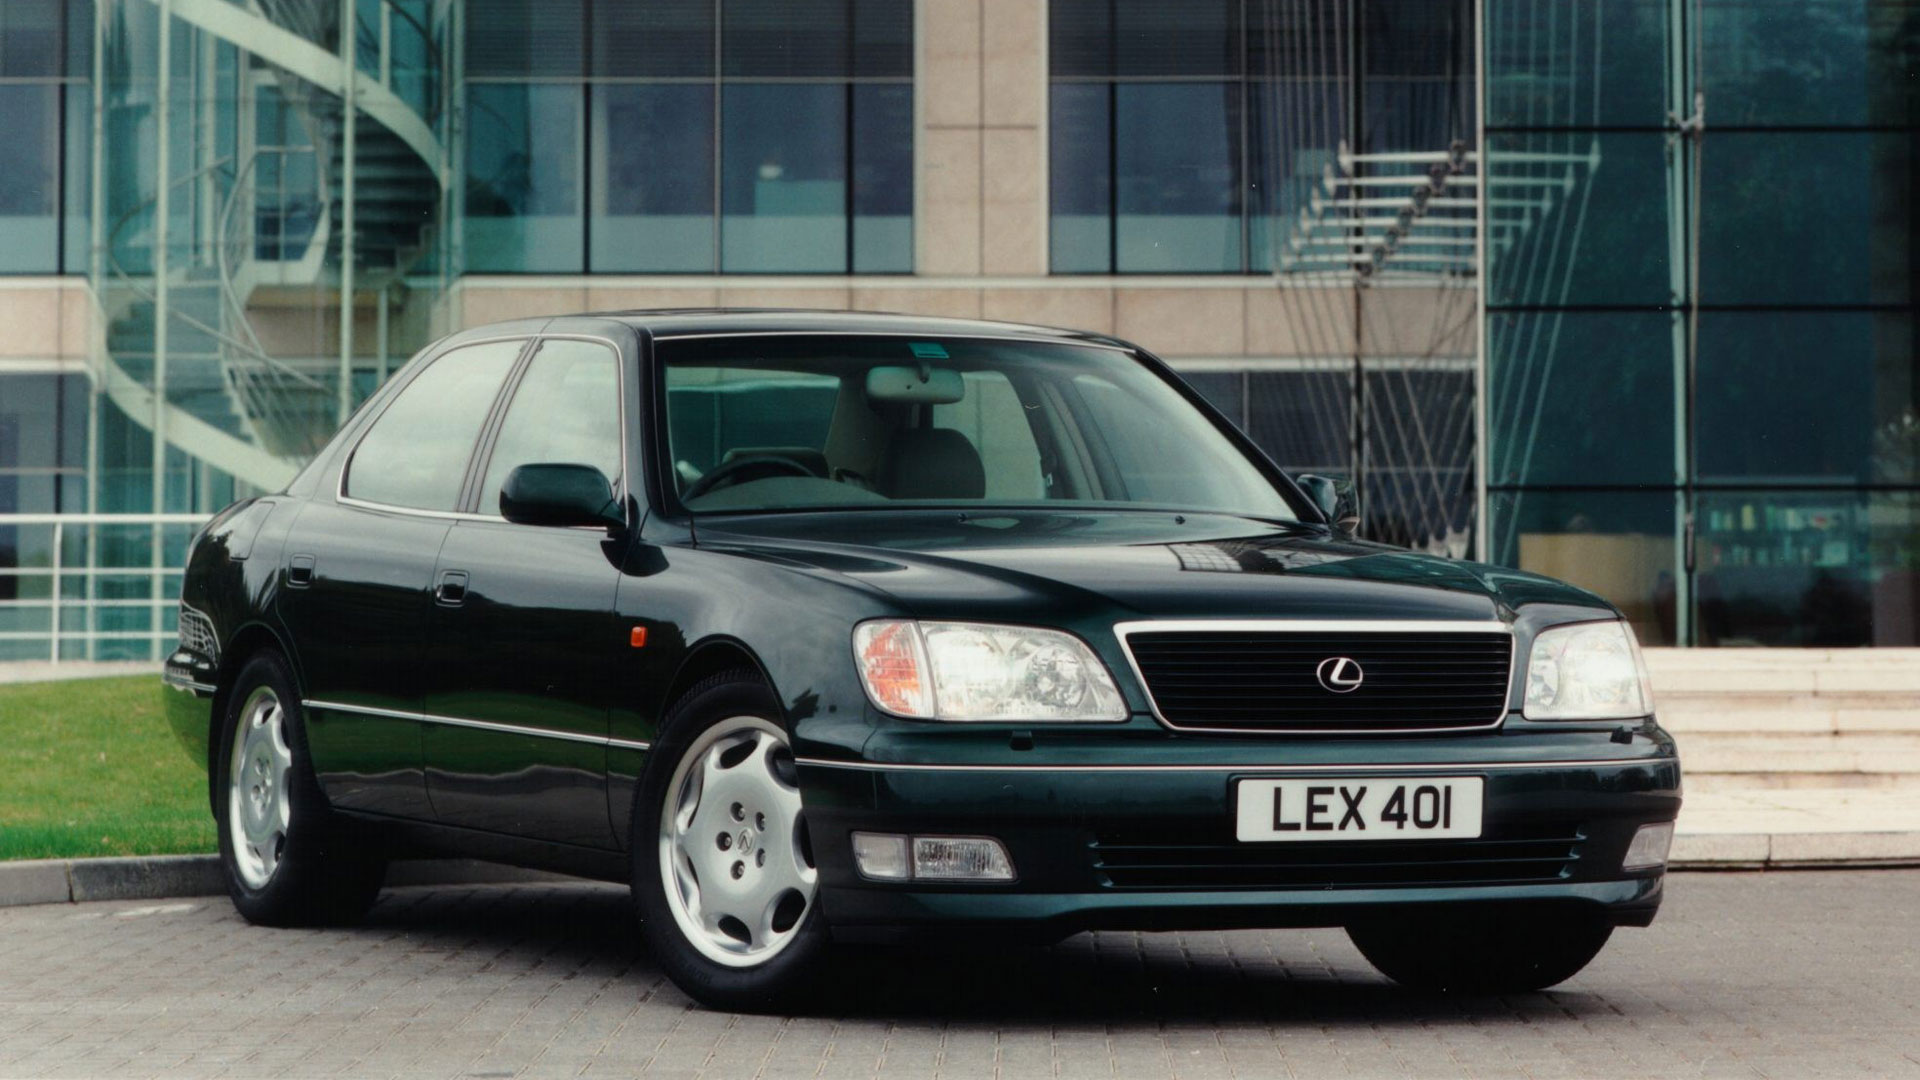 30 years of Lexus